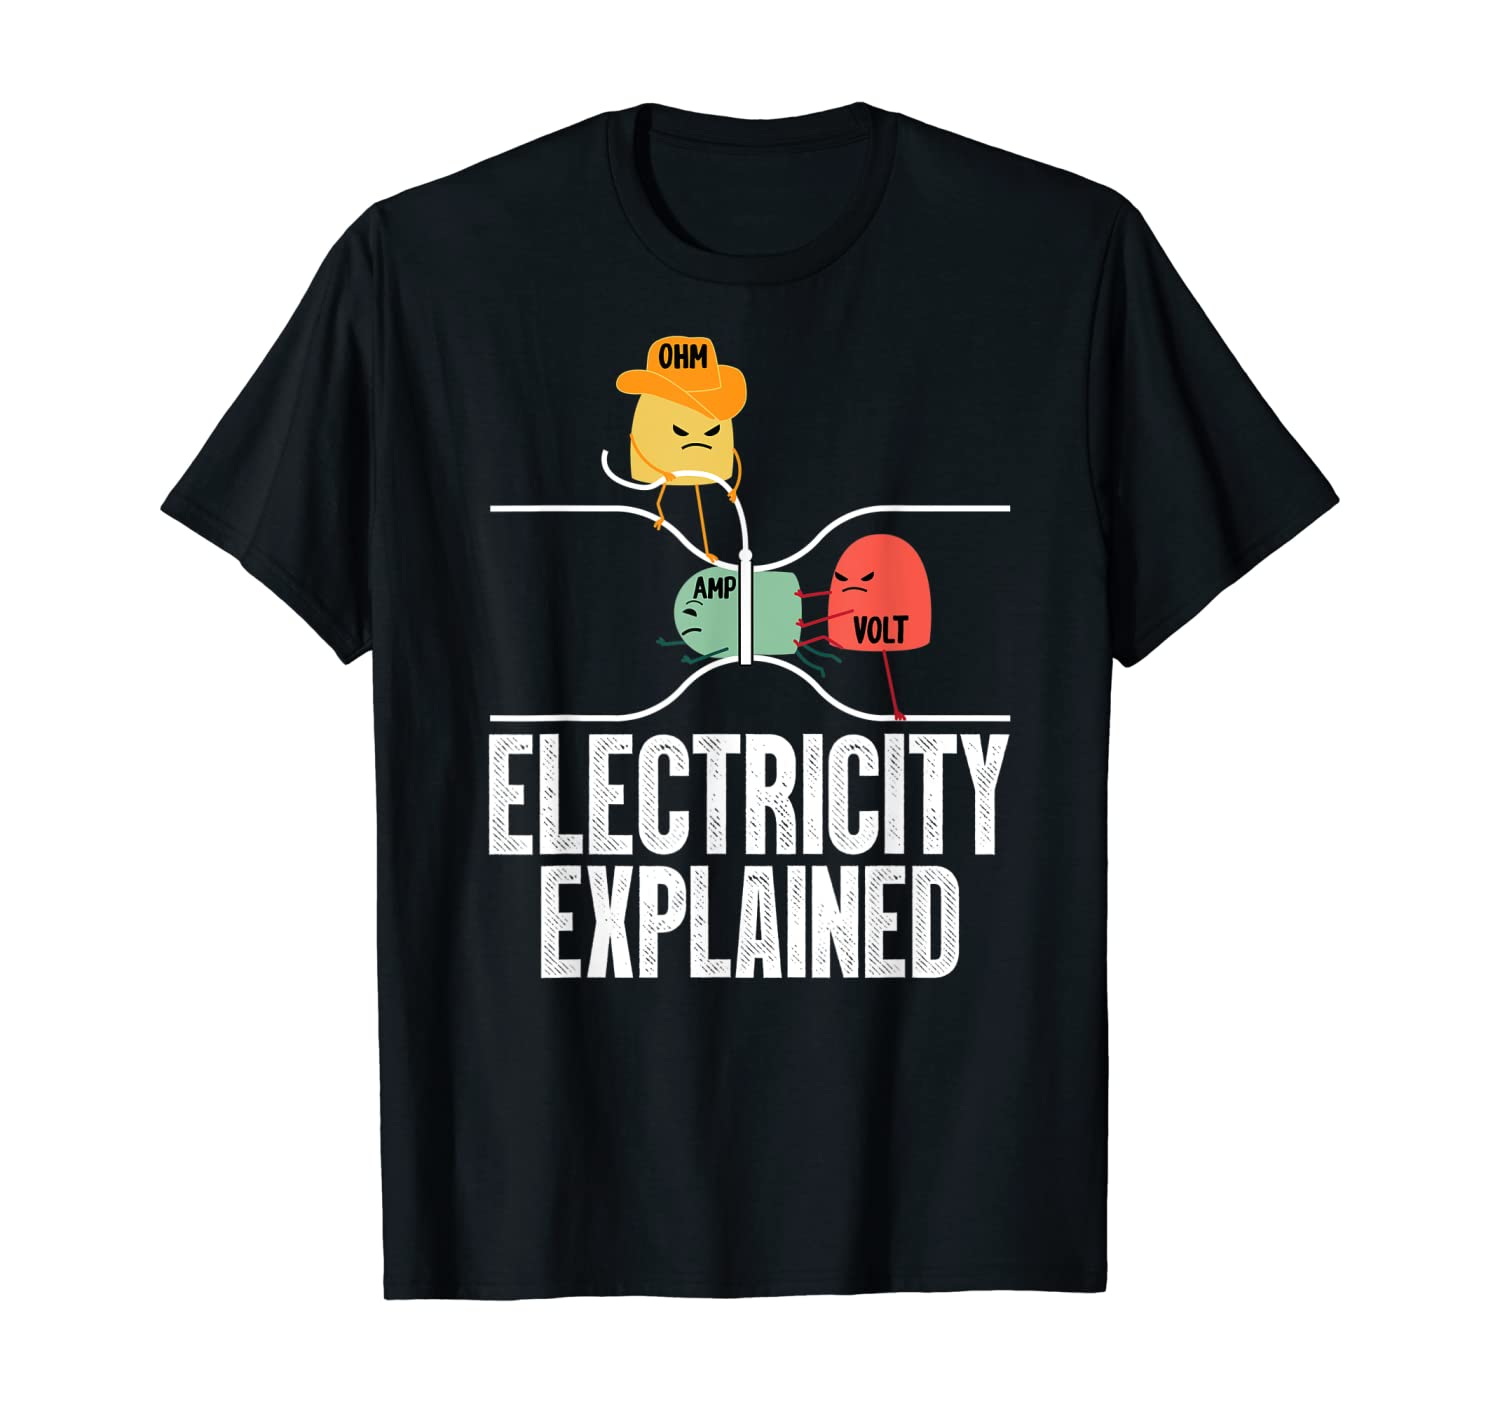 Ohm Volt Amp Electricity Explained Funny Electrician Nerd T-Shirt